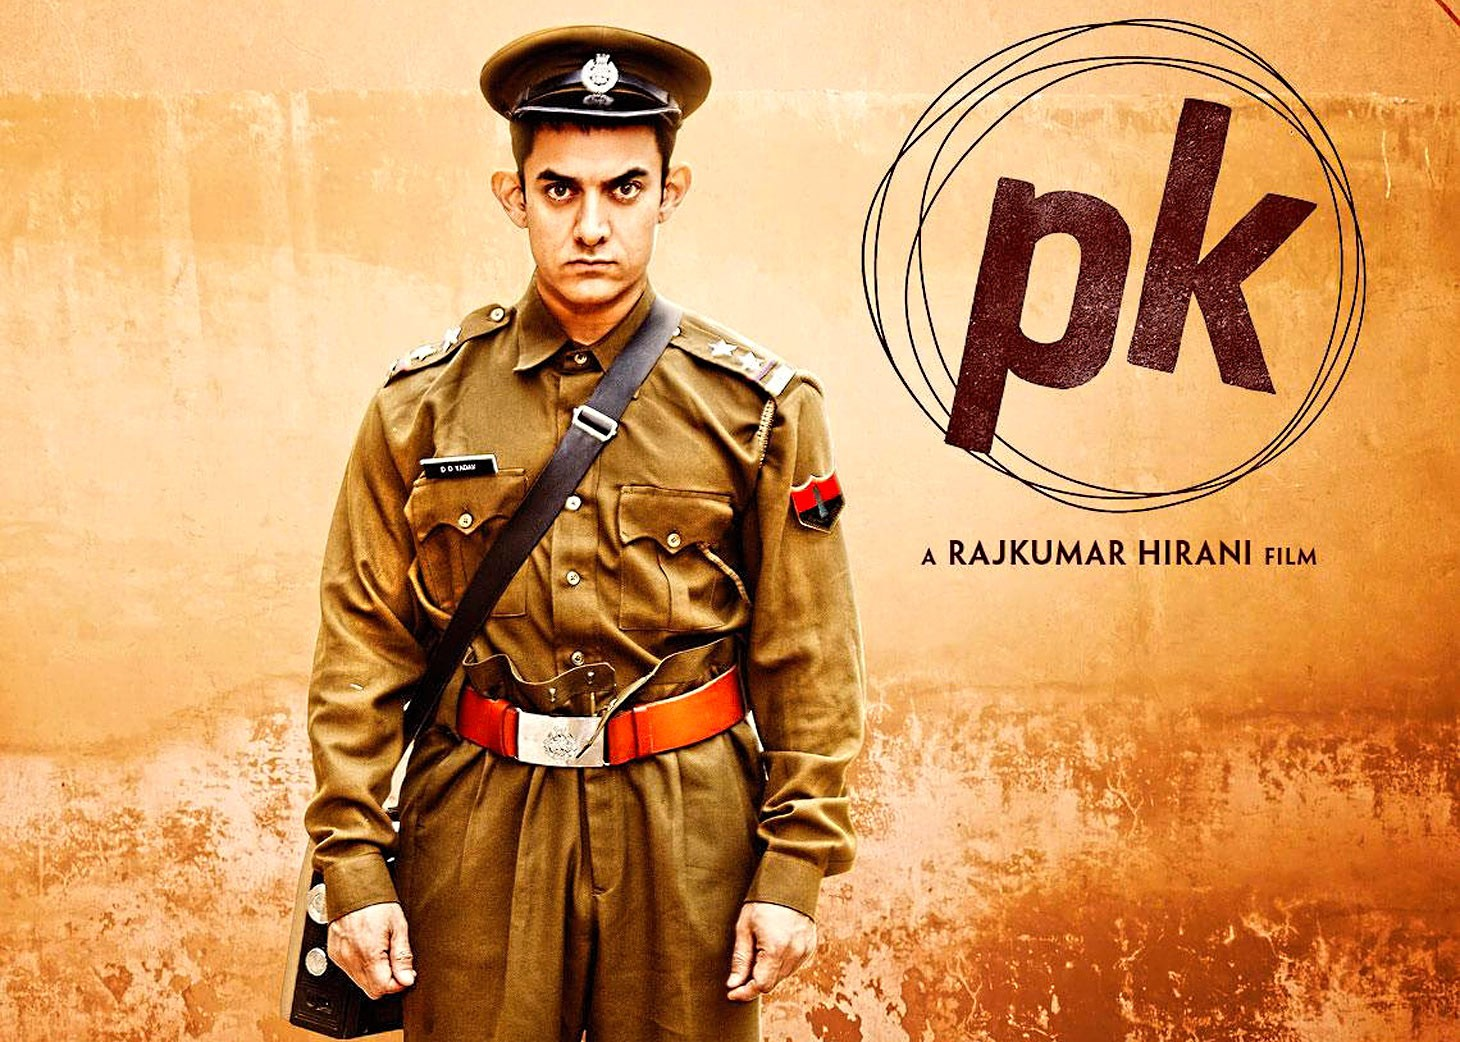 Pk-Movie-HD-wallpapers-hd